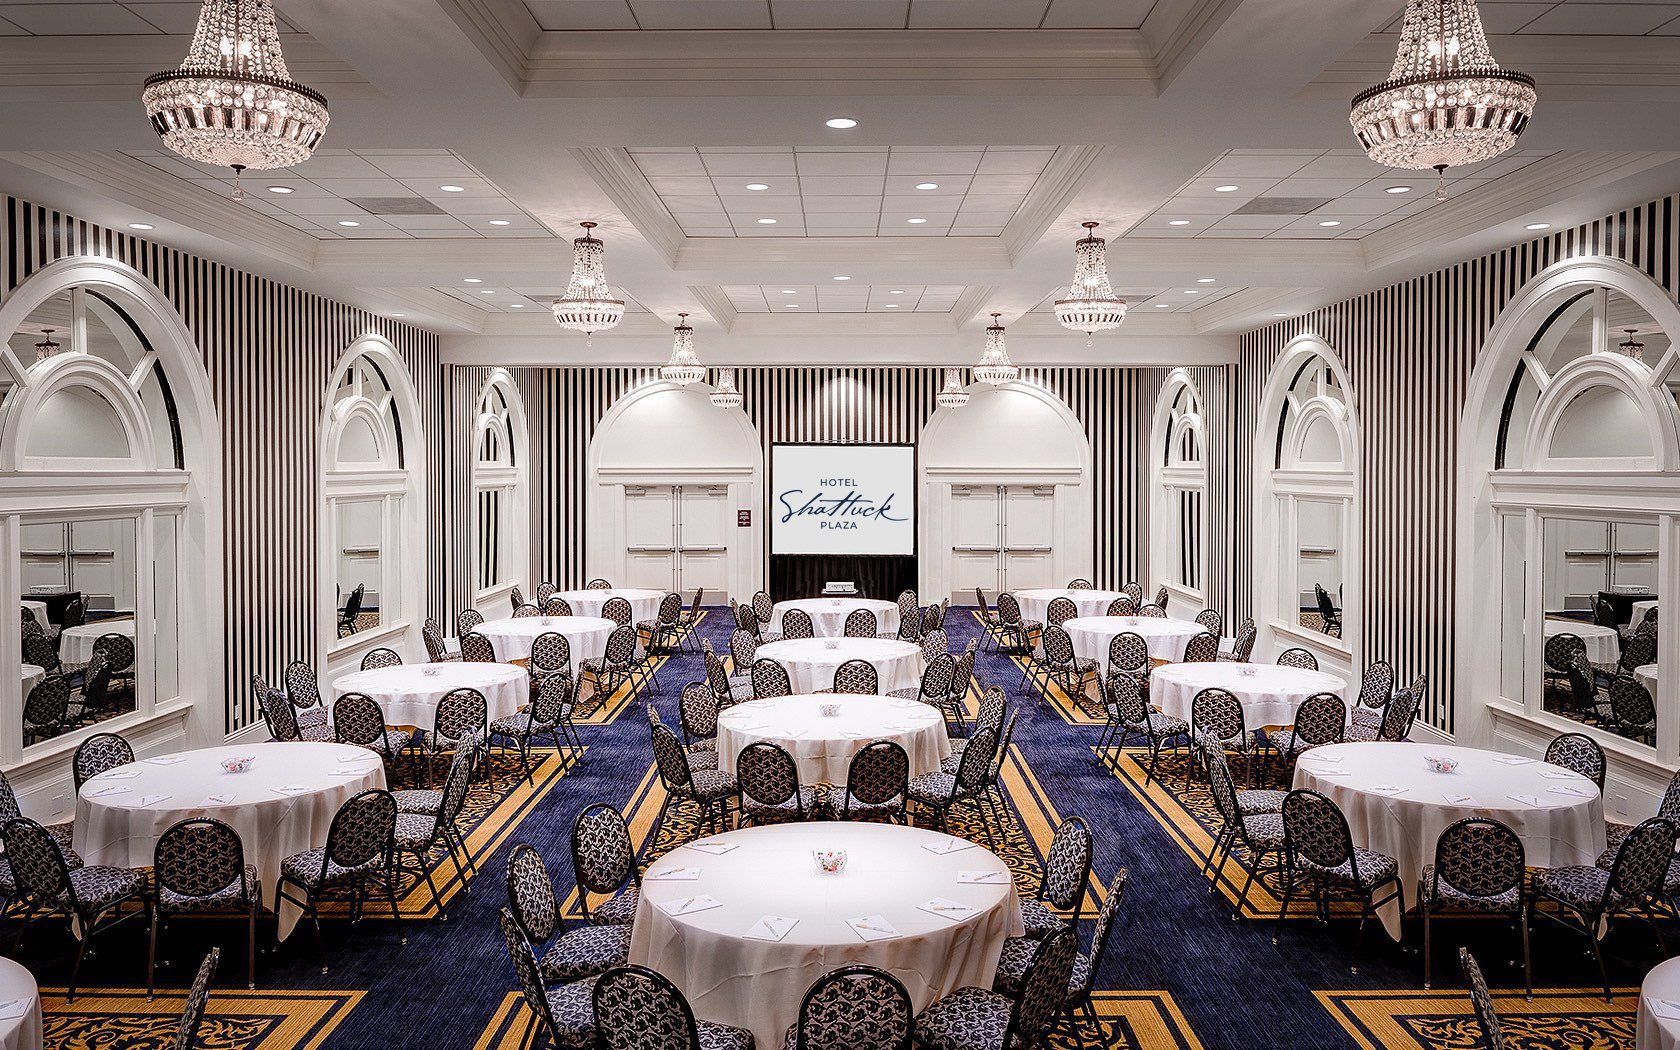 Crystal Ballroom event space at The Hotel Shattuck Plaza in Bay Area